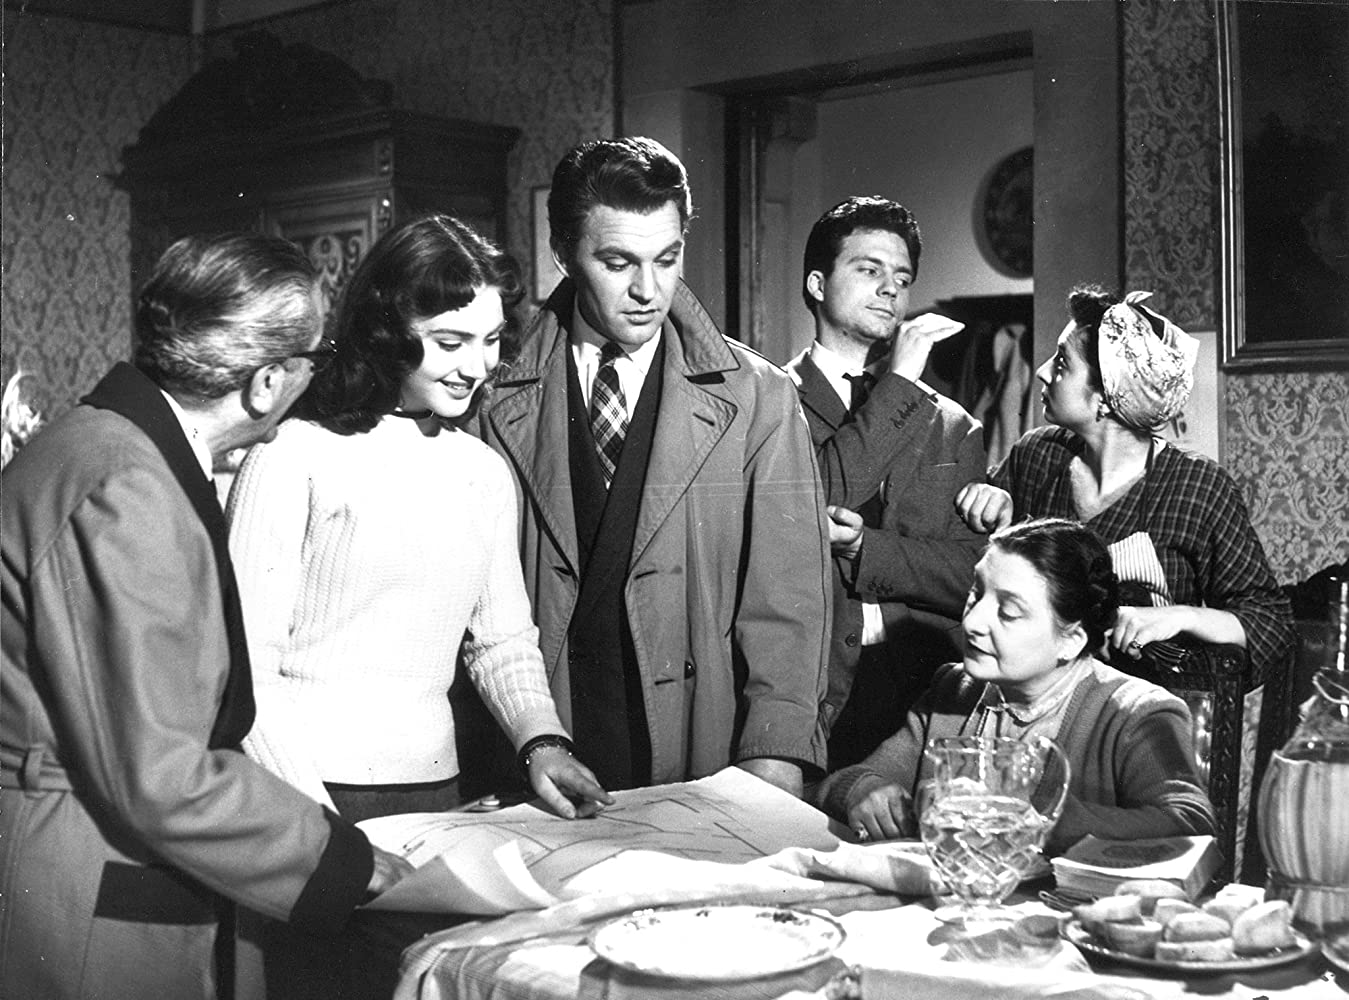 Paola Borboni, Franco Fabrizi, Franco Interlenghi, and Leonora Ruffo in I vitelloni (1953)